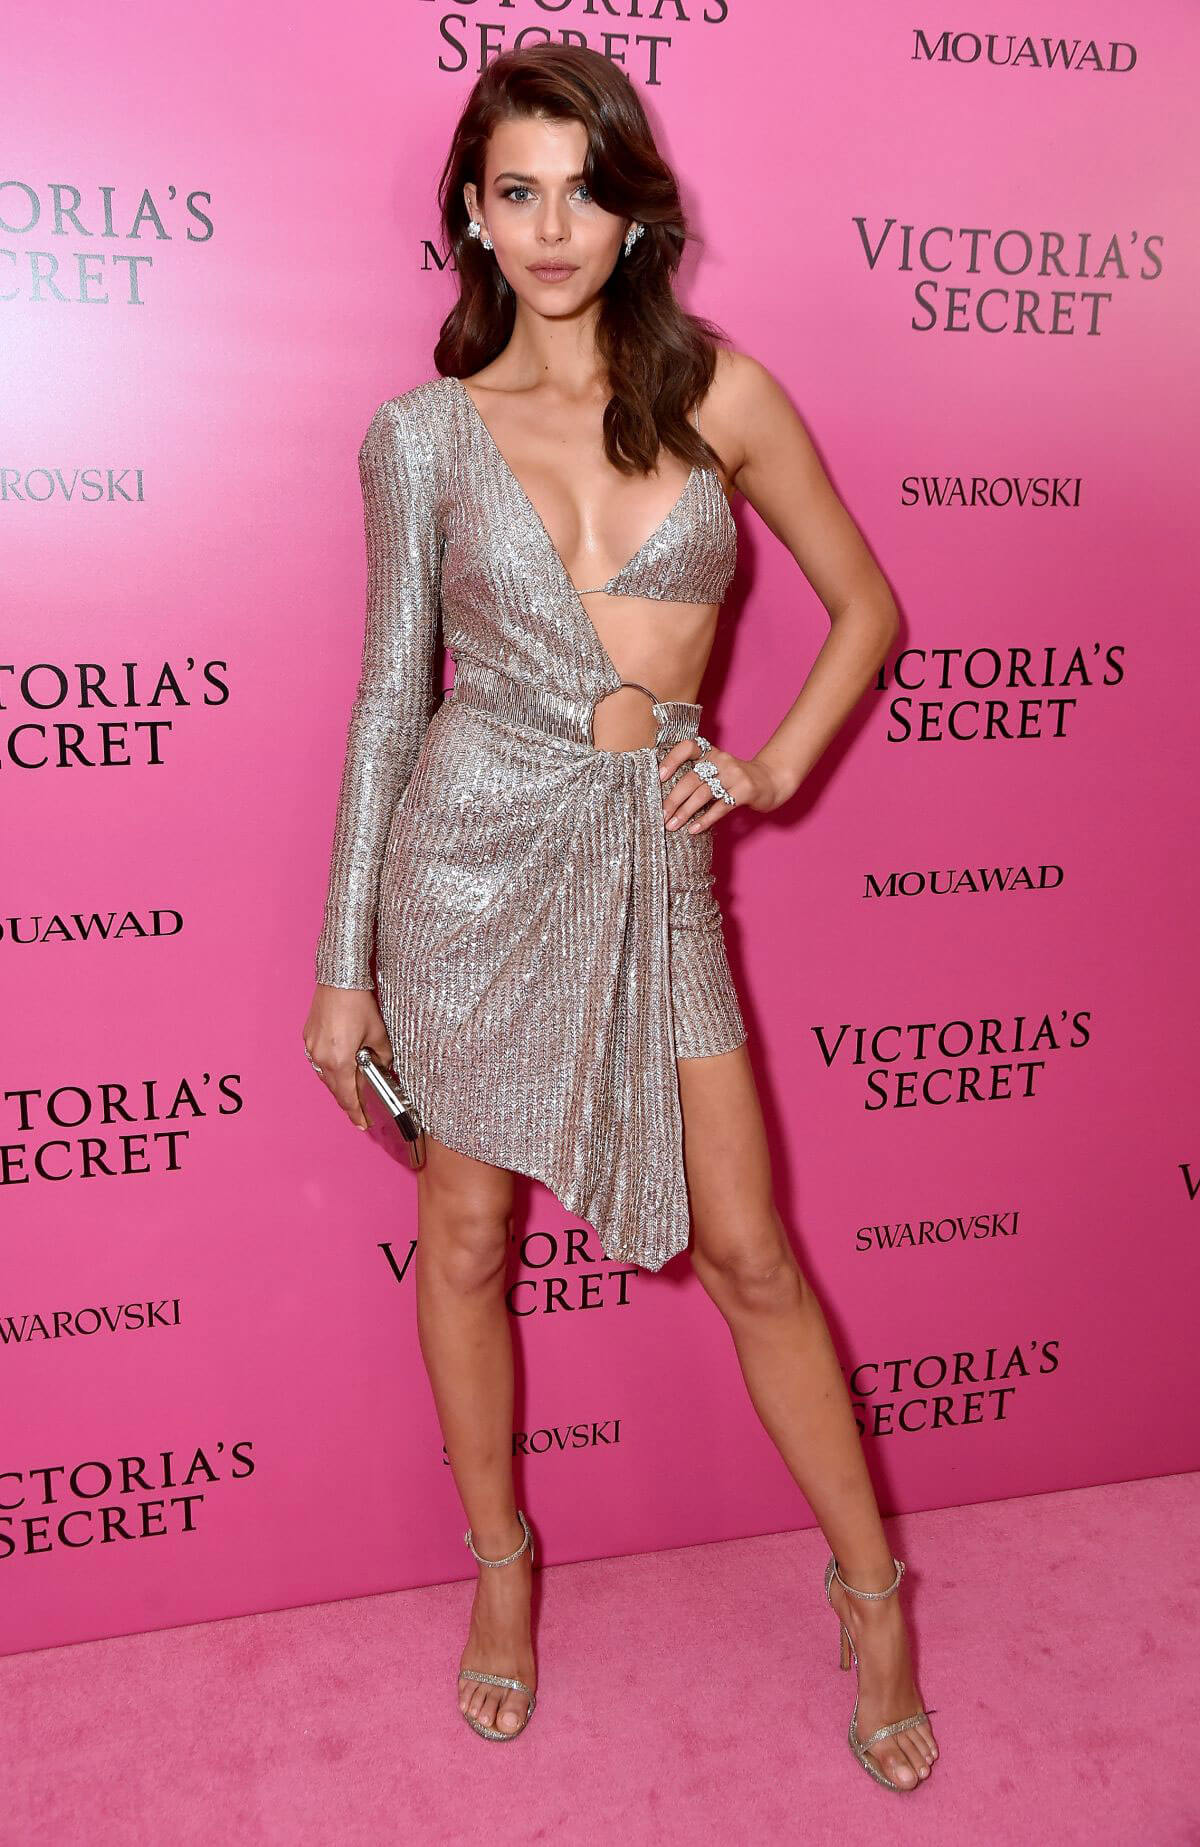 Georgia Fowler Stills at 2017 Victoria's Secret Fashion Show After Party in Shanghai